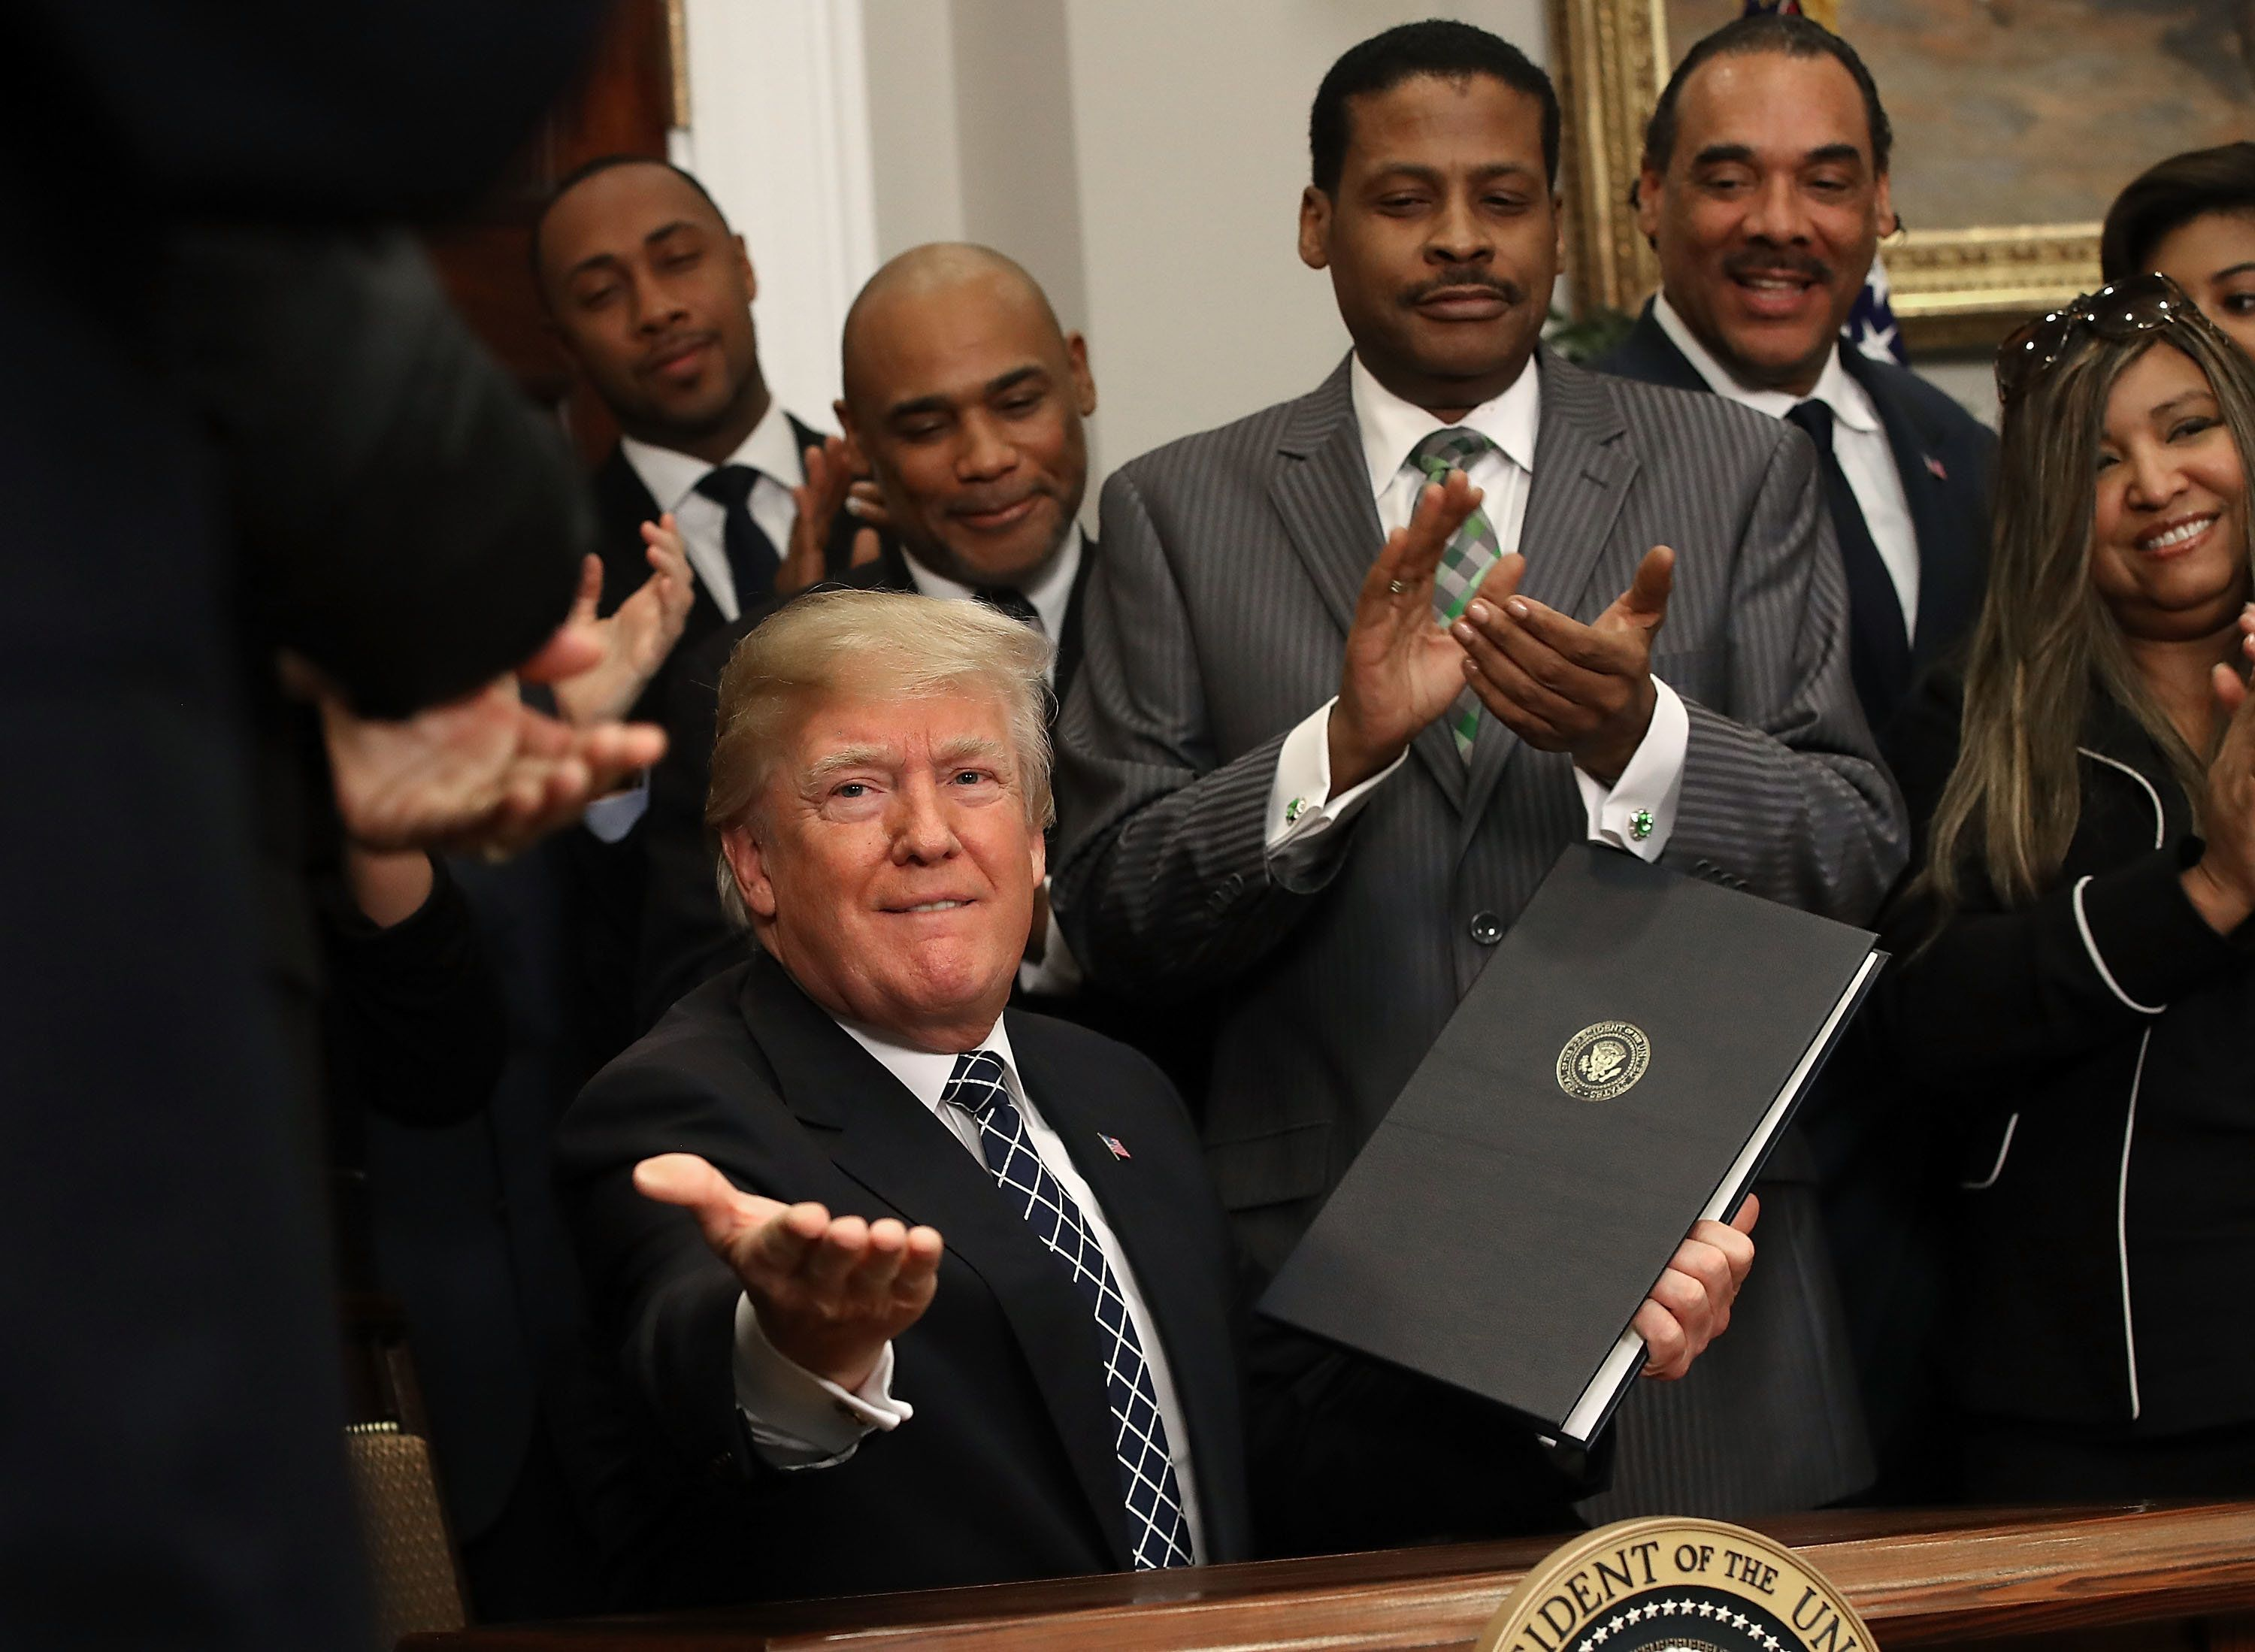 WASHINGTON, DC - JANUARY 12: U.S. President Donald Trump receives applause from members of the African American community after signing a proclamation to honor Martin Luther King, Jr. day, in the Roosevelt Room at the White House, on January 12, 2018 in Washington, DC. Monday January 16 is a federal holiday to honor Dr. King and his legacy.  (Photo by Mark Wilson/Getty Images)